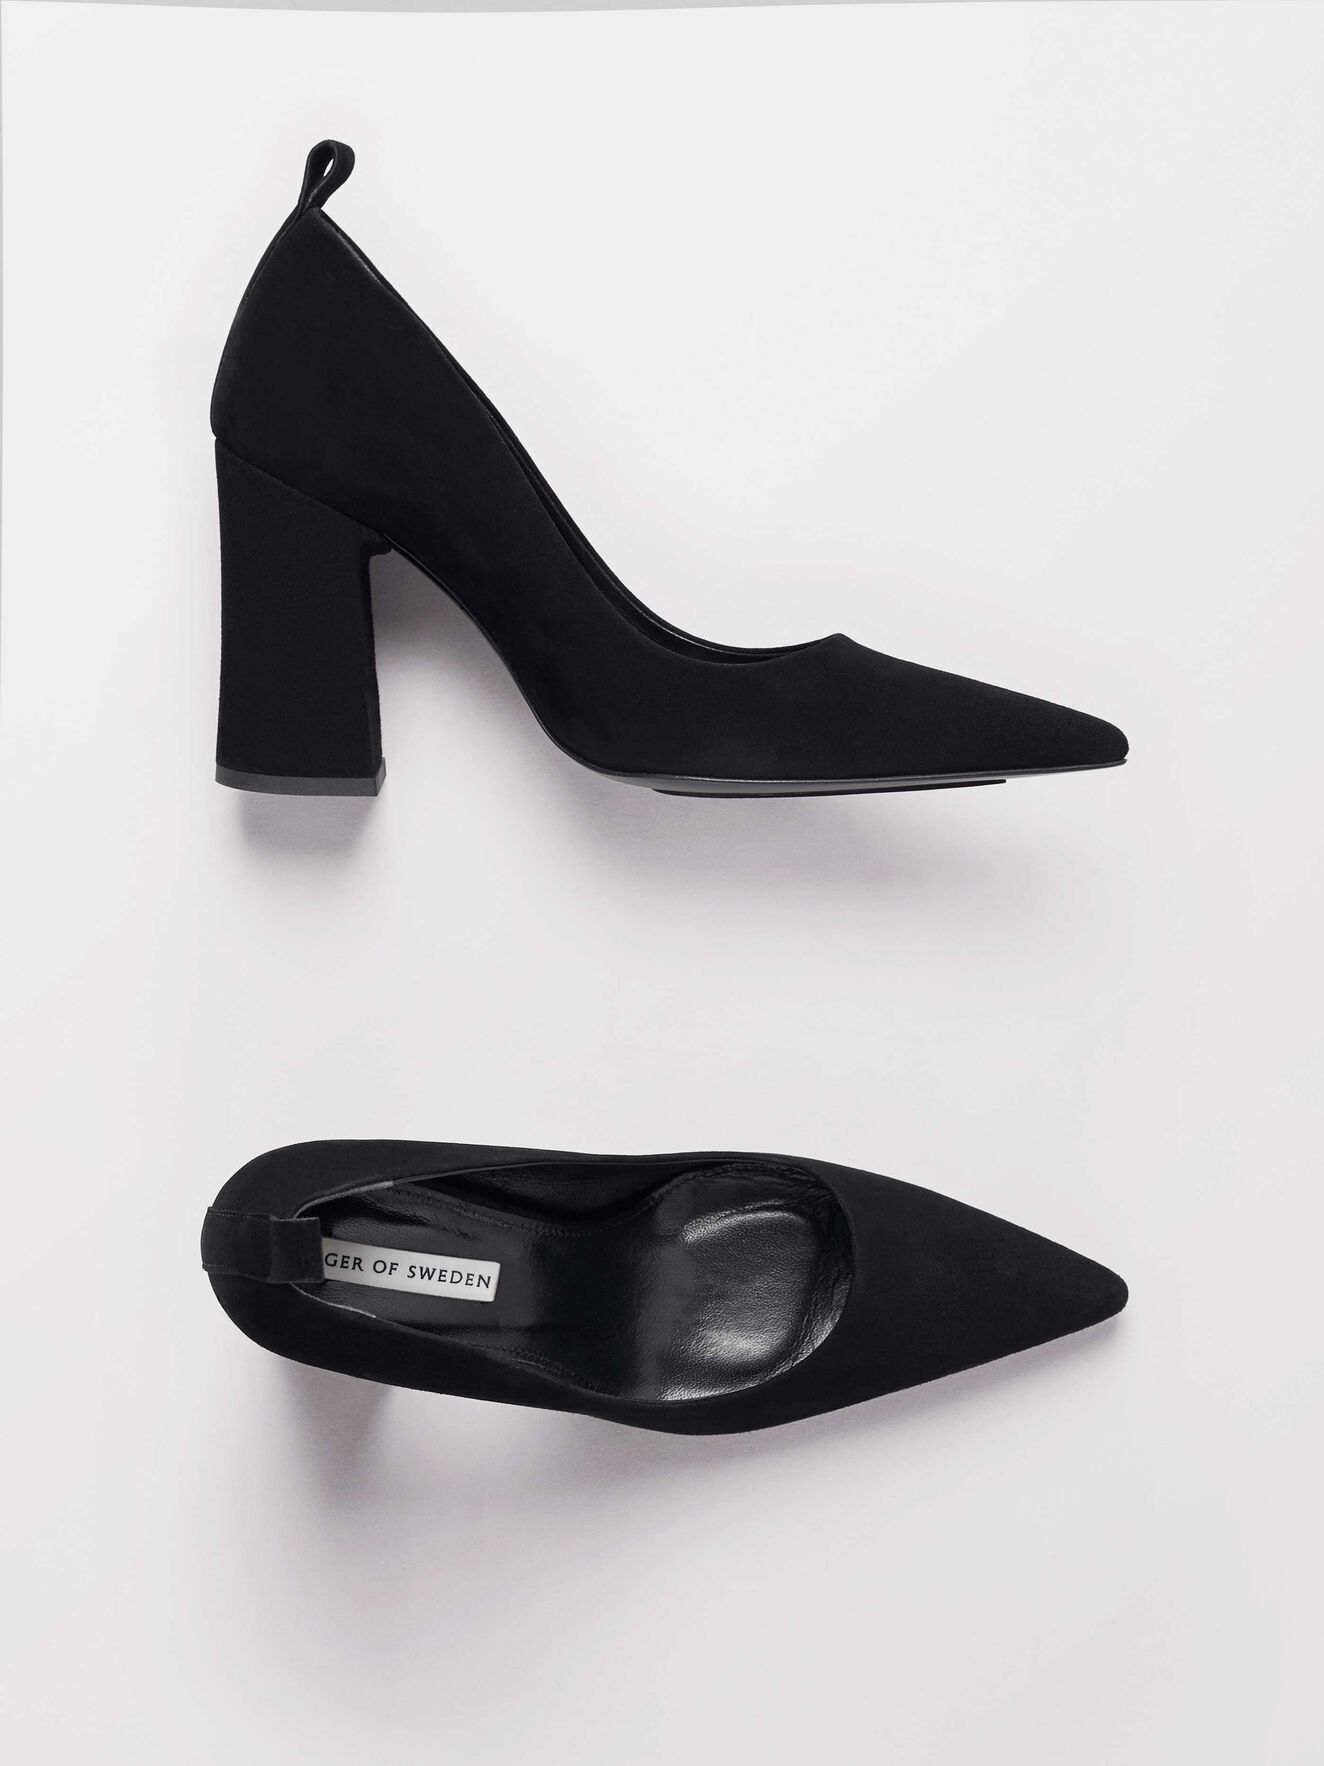 Sai Pumps in Black from Tiger of Sweden